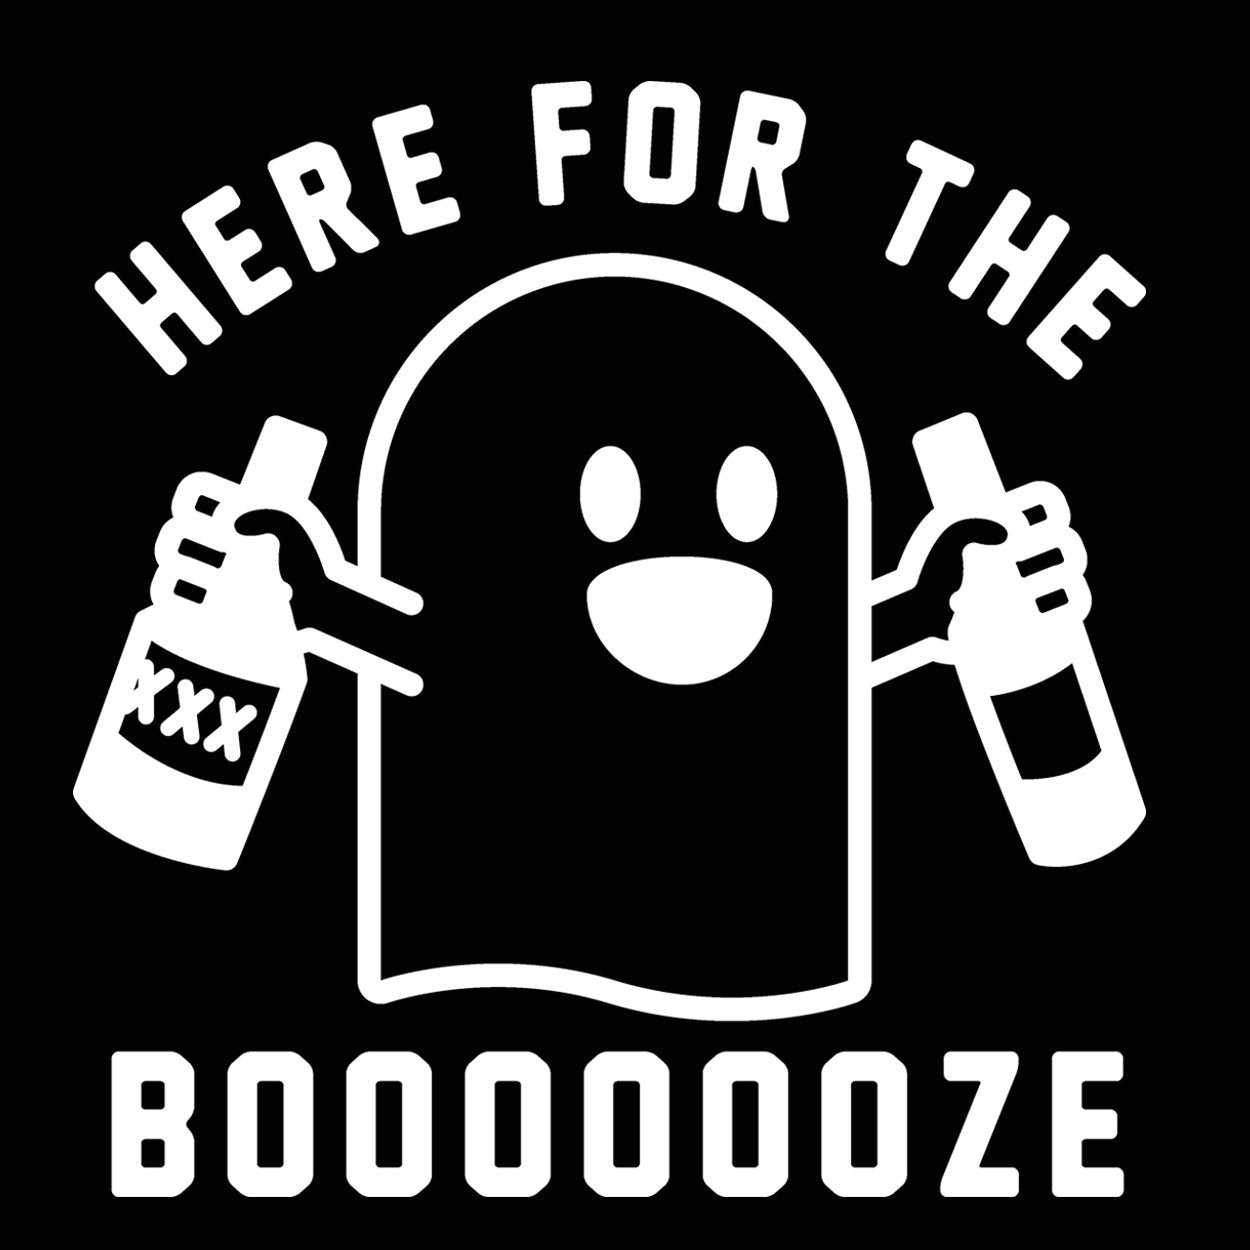 Here For The Booze Boo - DonkeyTees